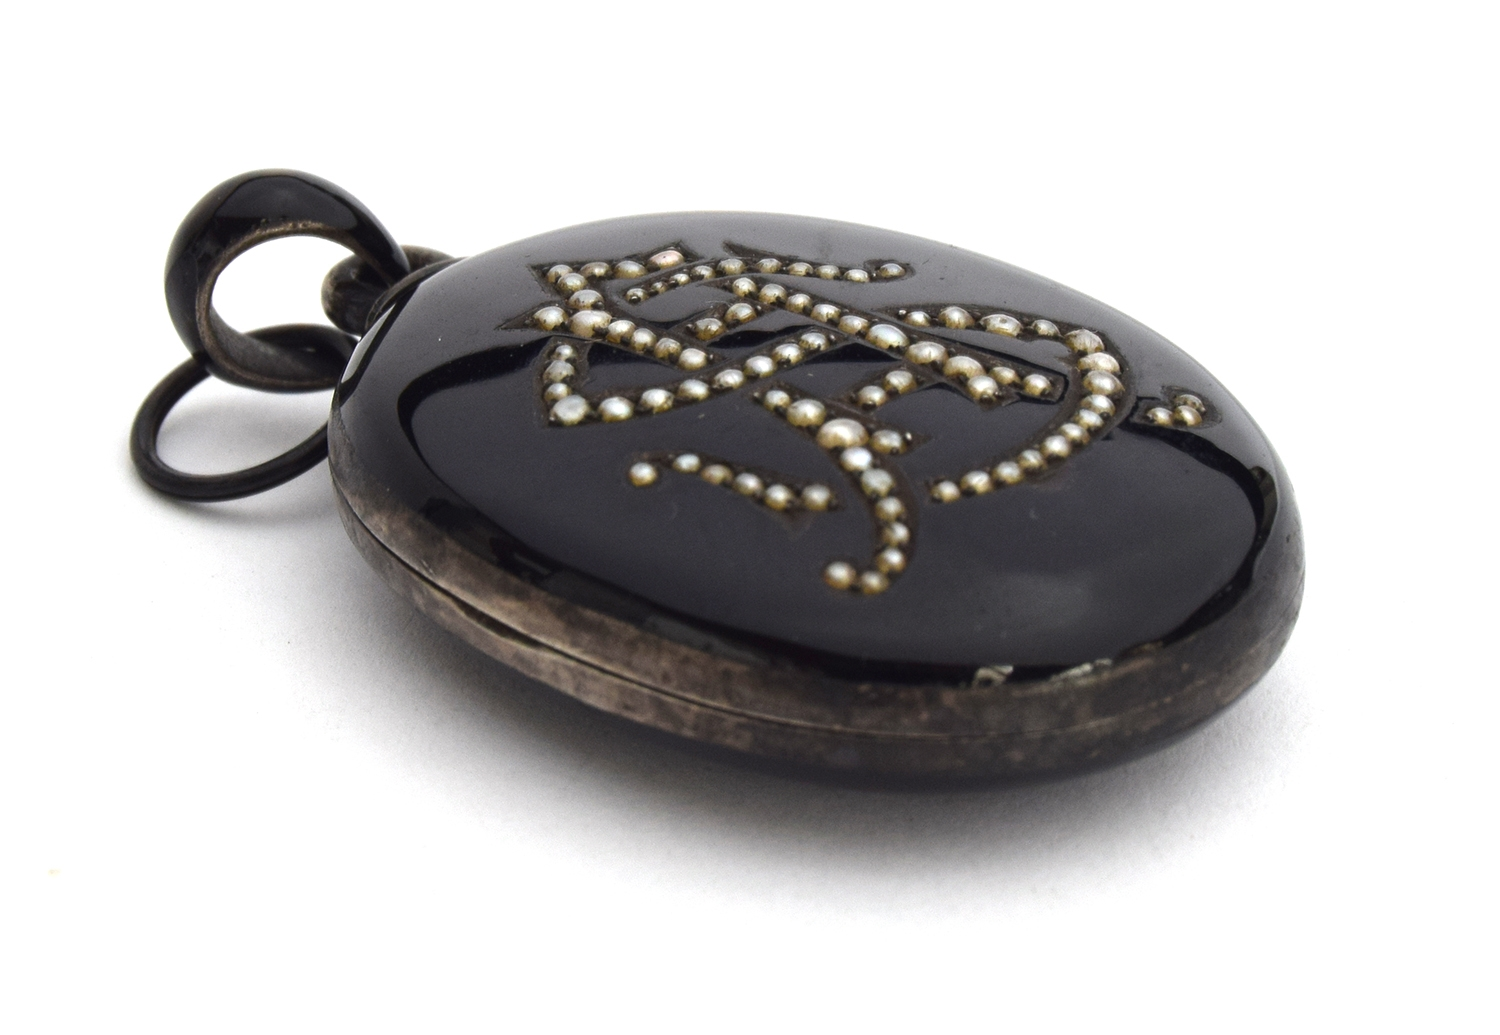 Victorian silver and black enamel mourning locket with the initials 'SA' formed in seed pearls, 5cmH